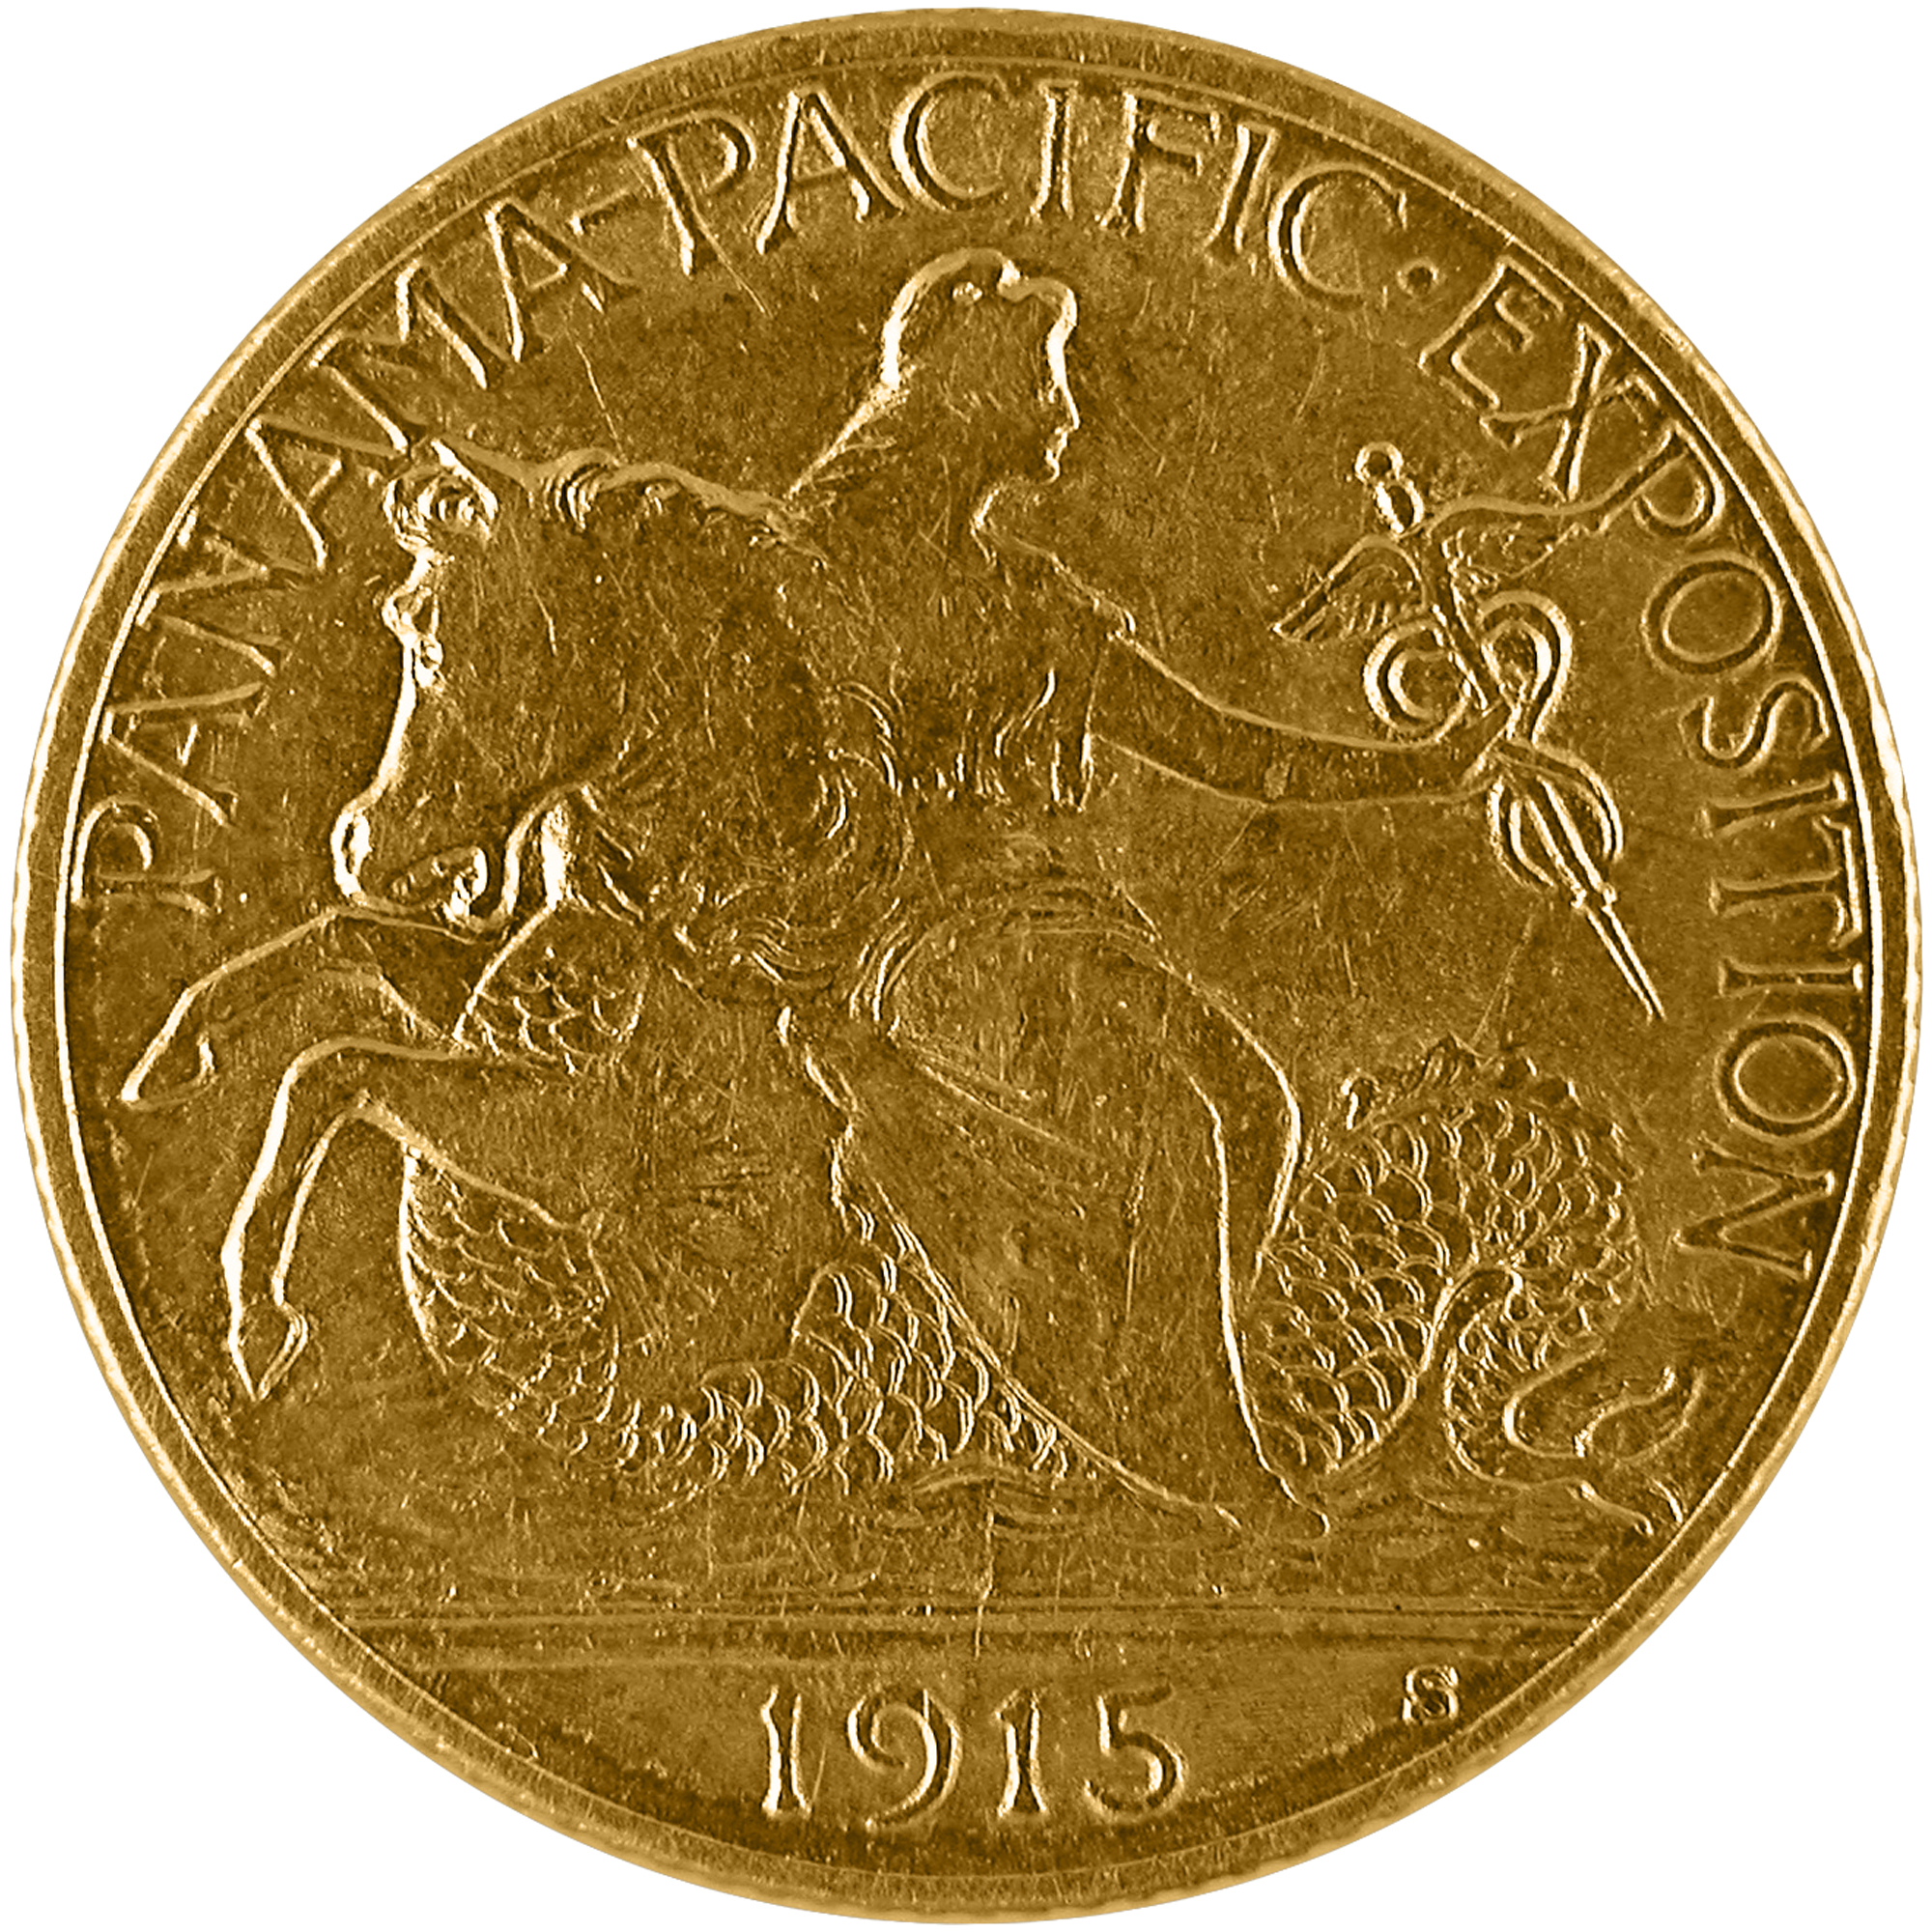 1915 Panama Pacific Exposition Commemorative Gold Quarter Eagle Two And One Half Dollar Coin Obverse